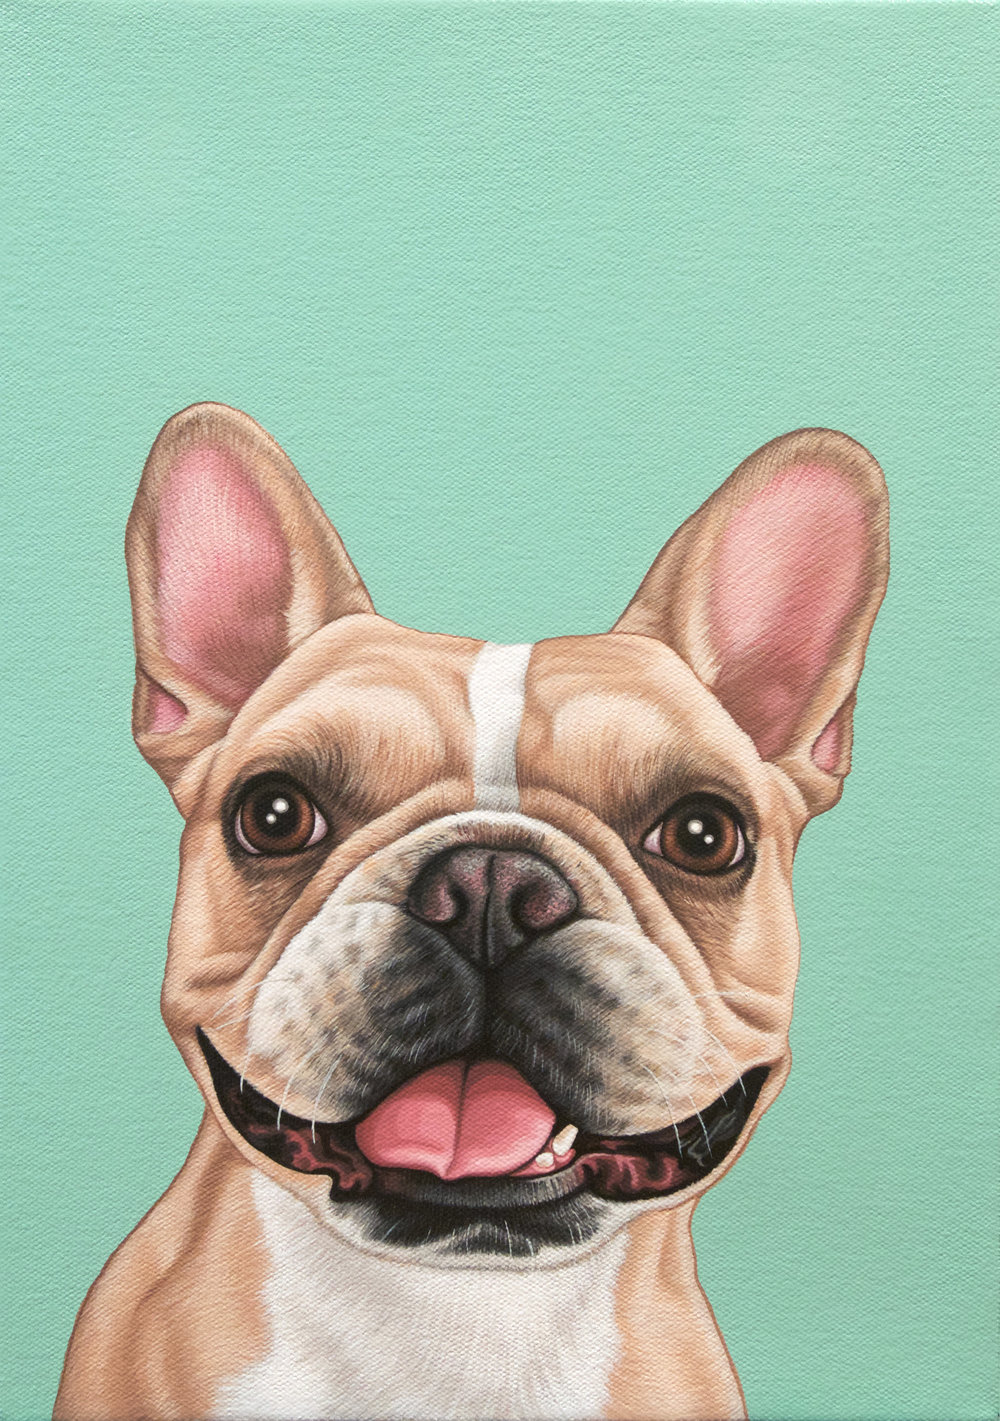 """Porkchop"", latex enamel on canvas, 10"" x 14"", 2017"